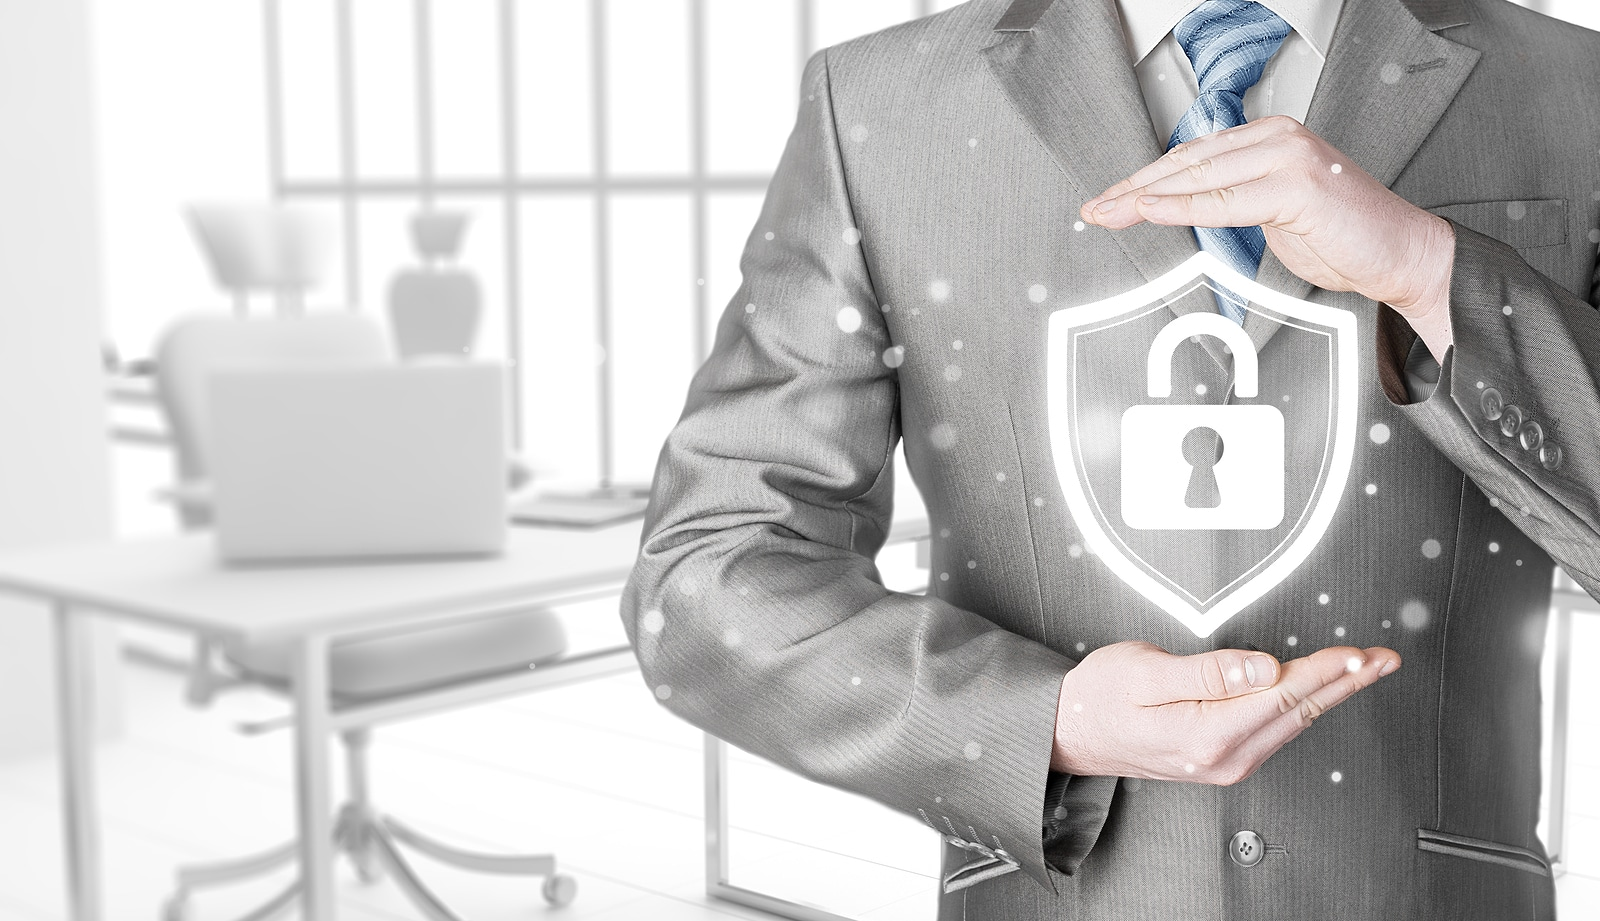 Data protection and insurance. Concept of business security, safety of information from virus, crime and attack